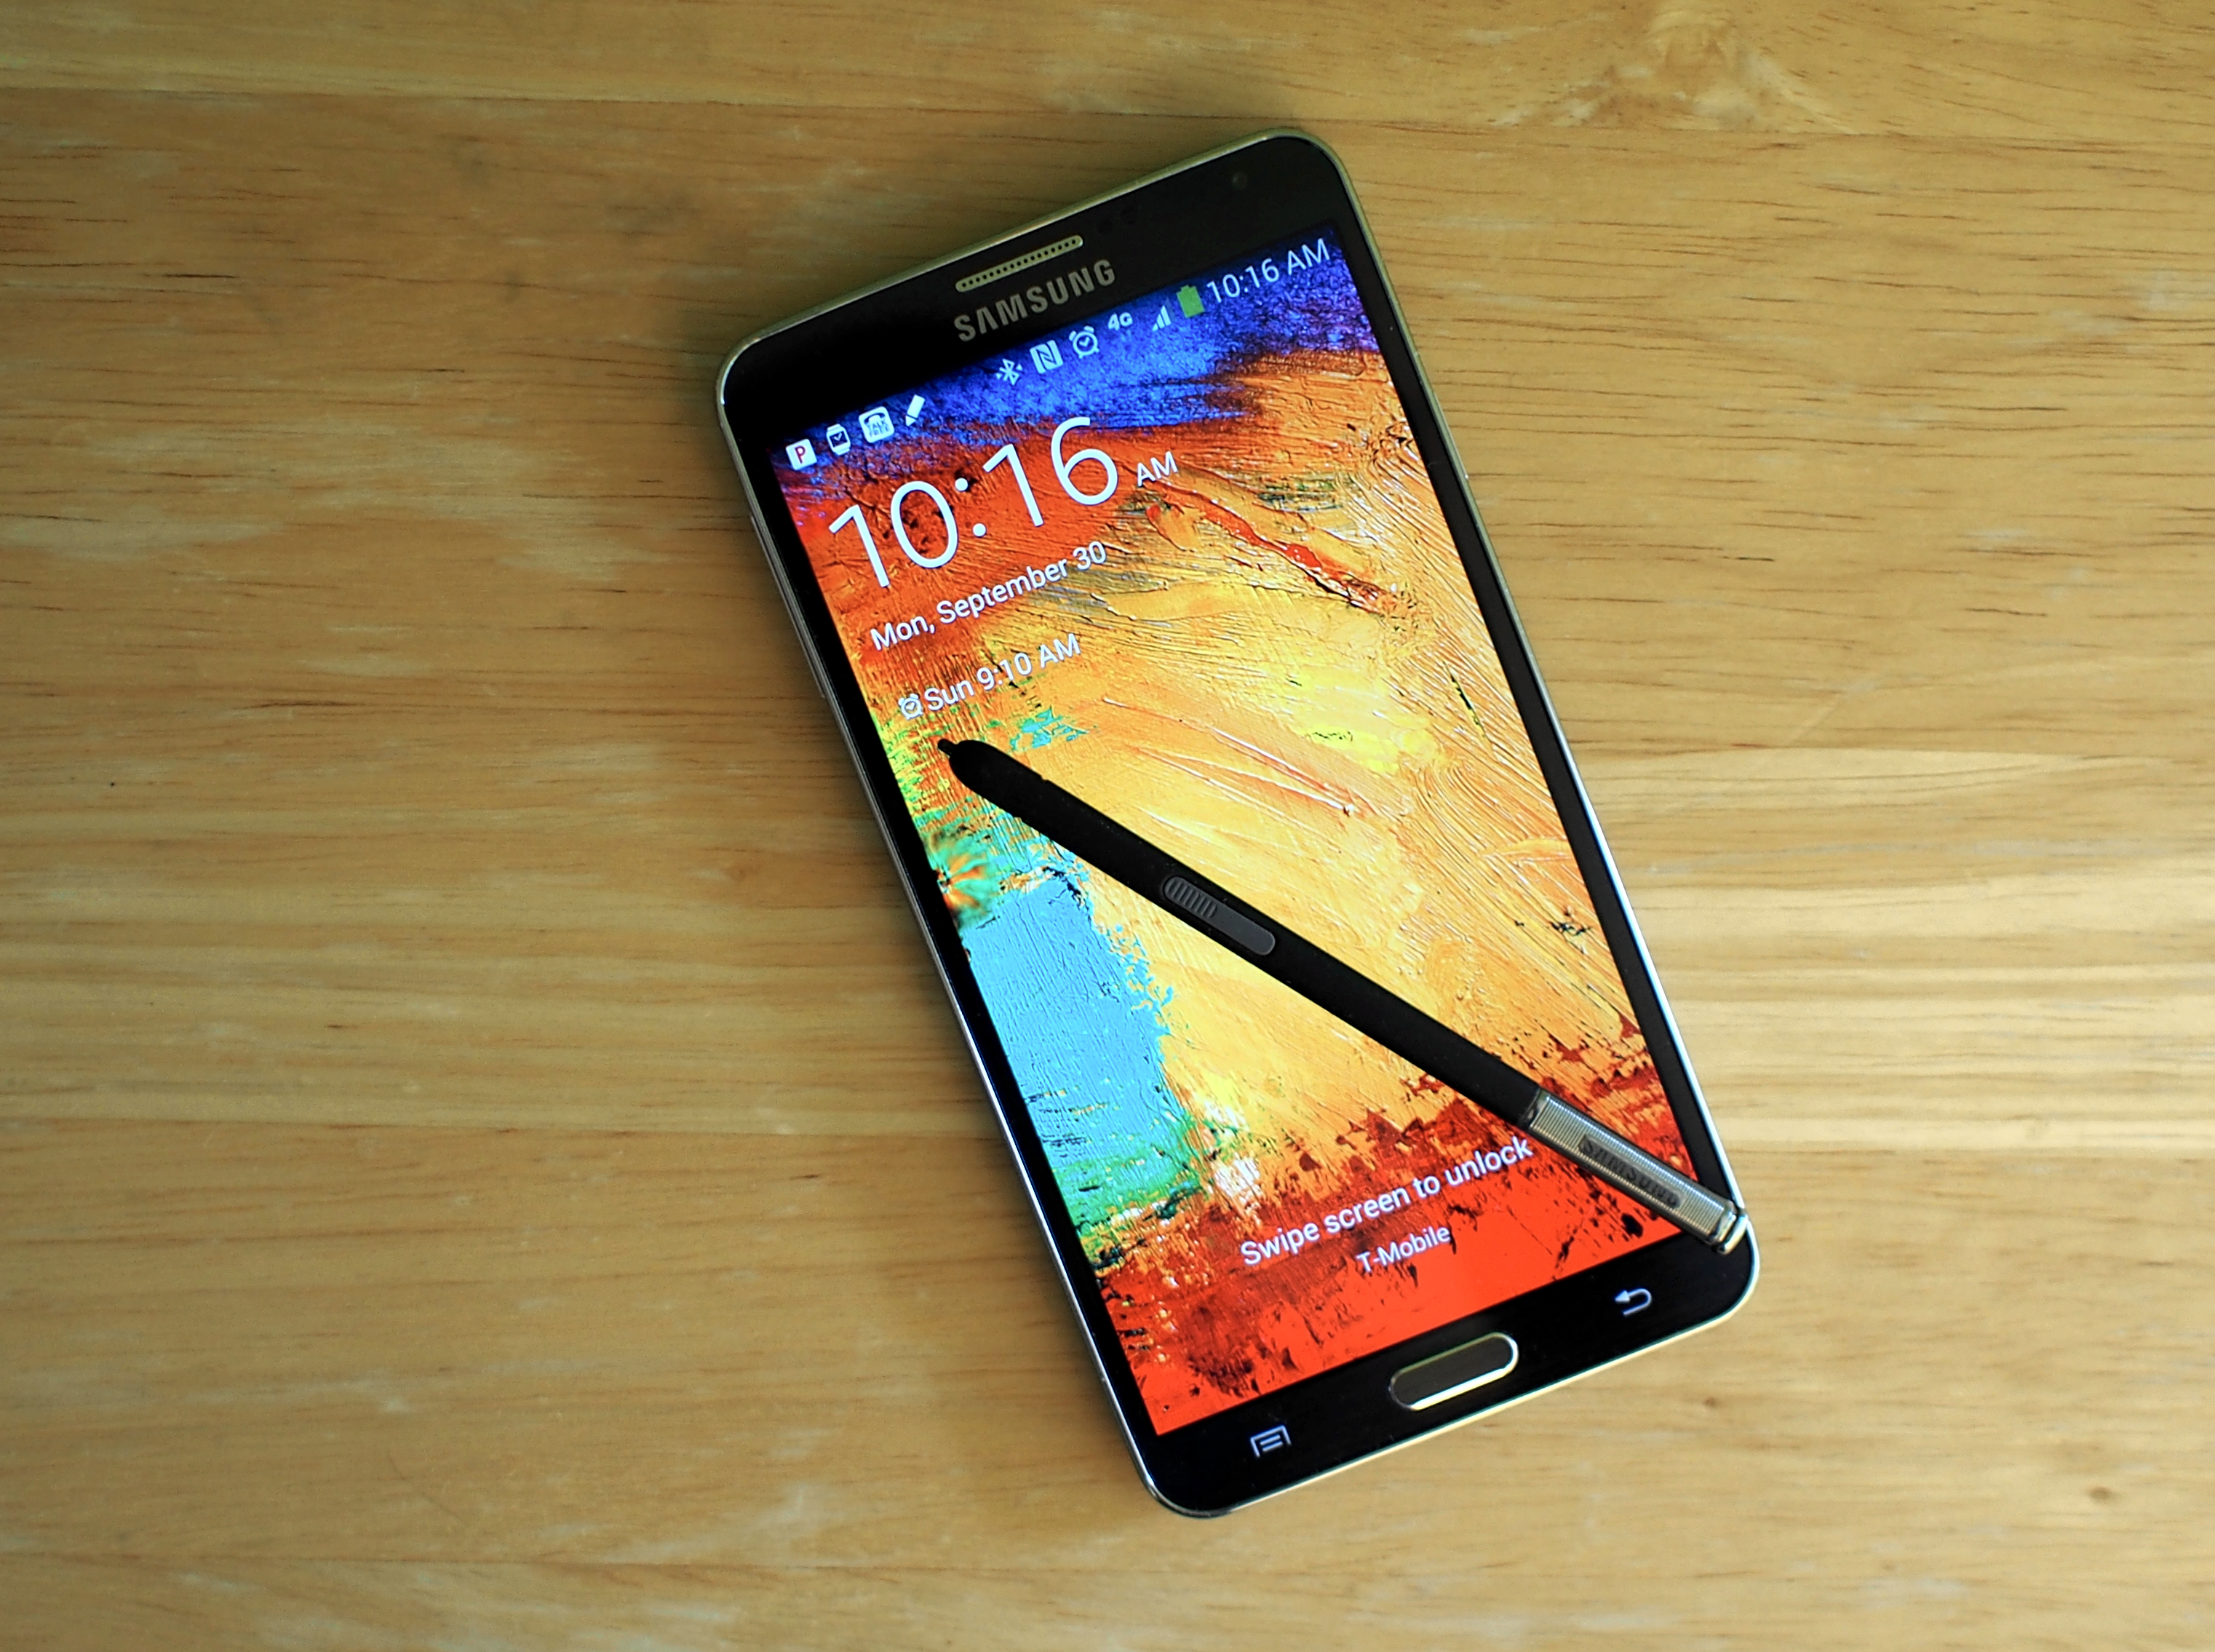 Samsung Galaxy Note 4 will be available in 140 countries in late October